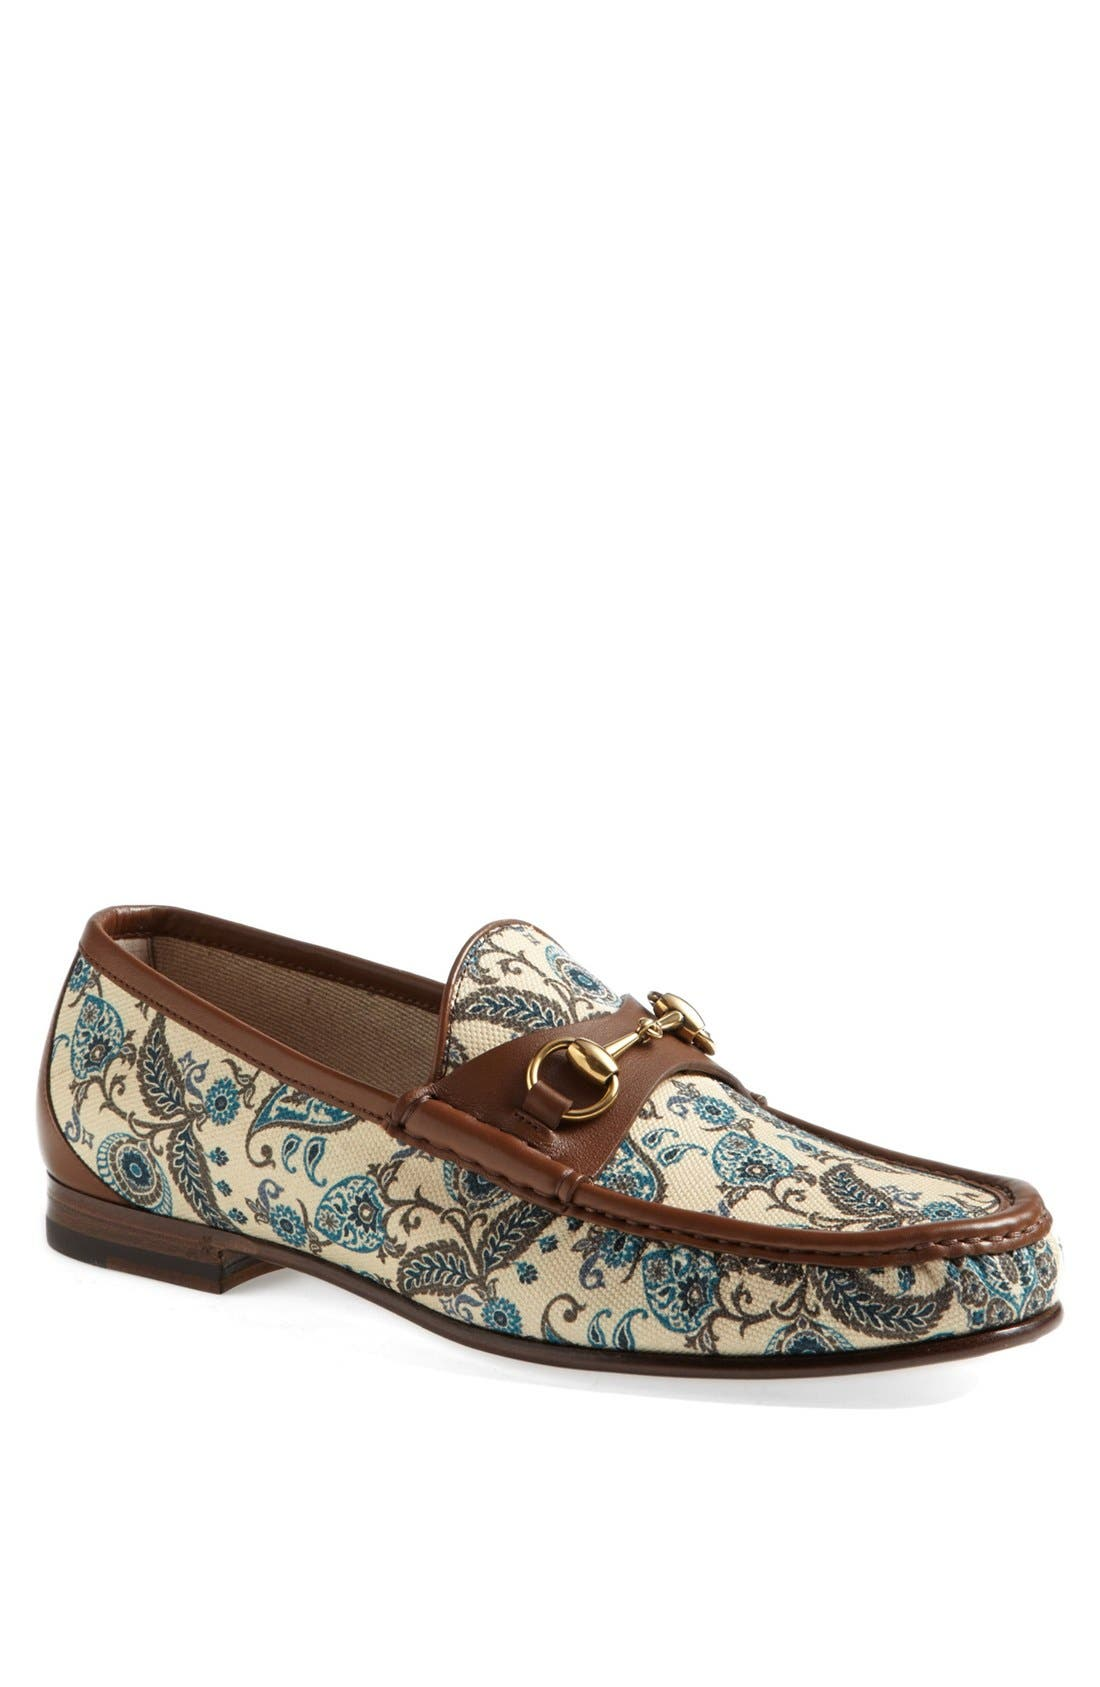 Alternate Image 1 Selected - Gucci 'Roos' Paisley Bit Loafer